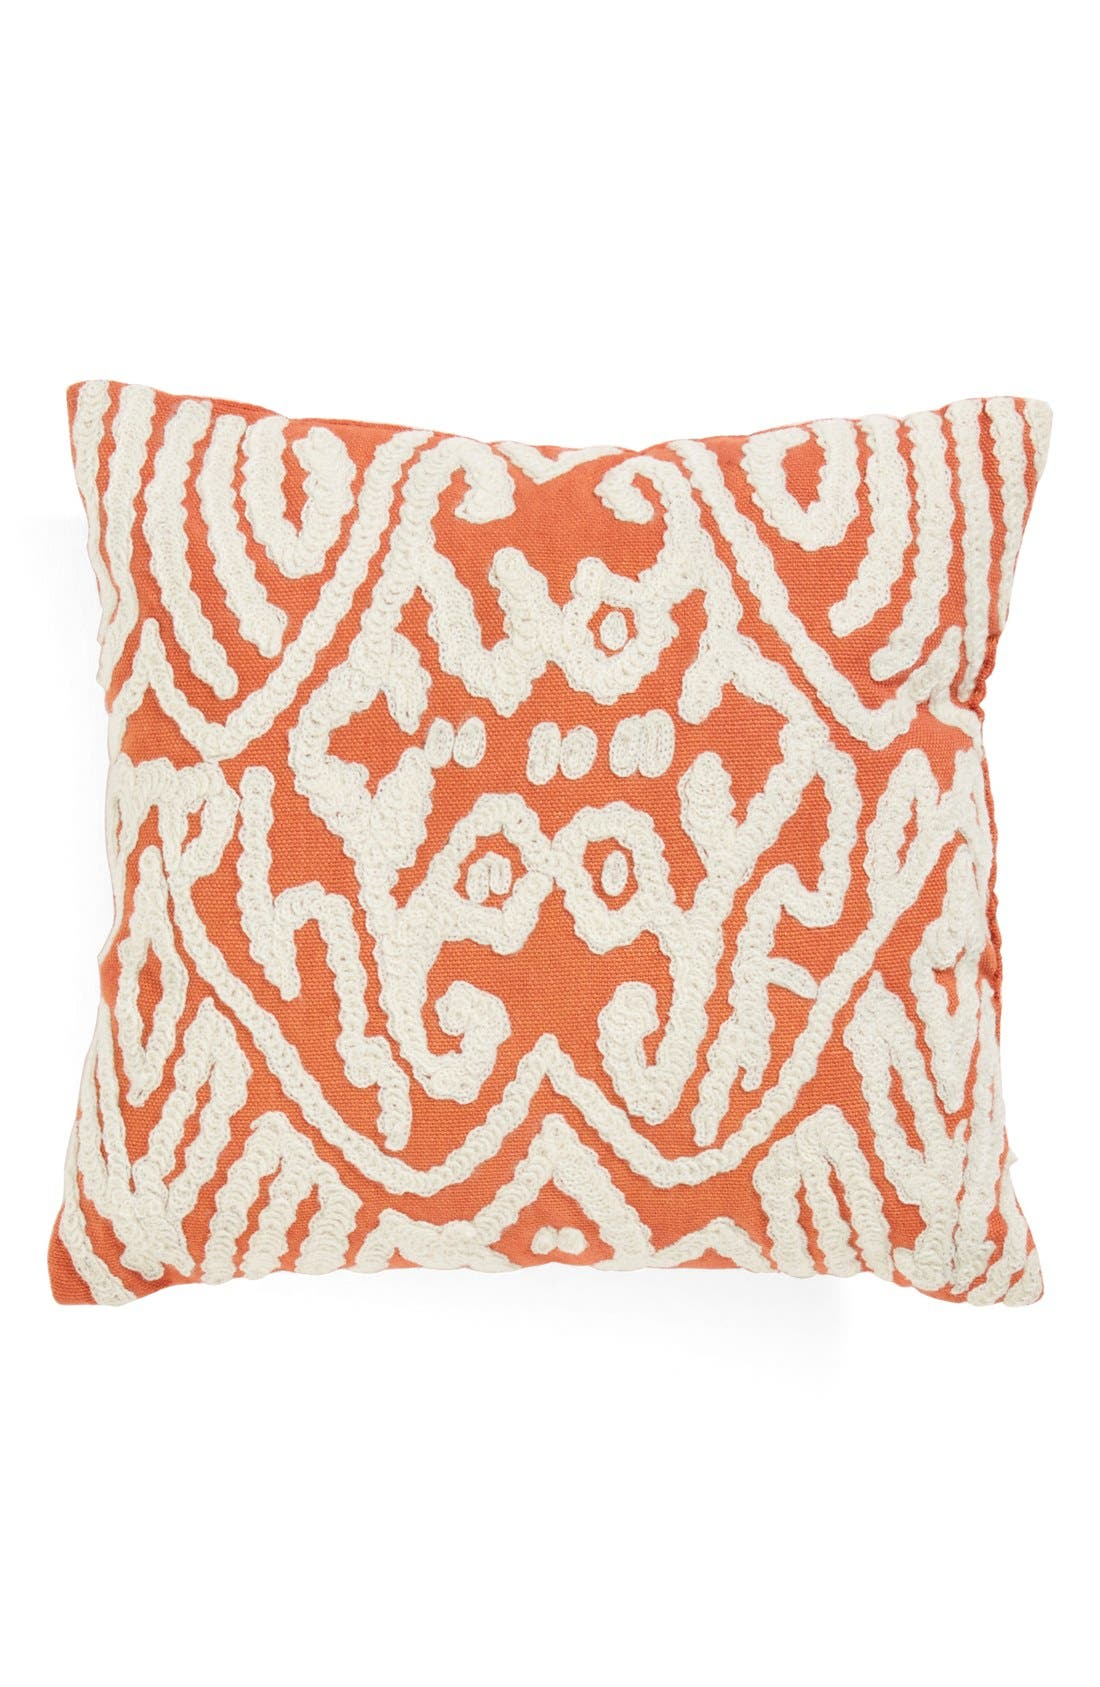 Alternate Image 1 Selected - Nordstrom at Home 'Ikat' Mini Accent Pillow